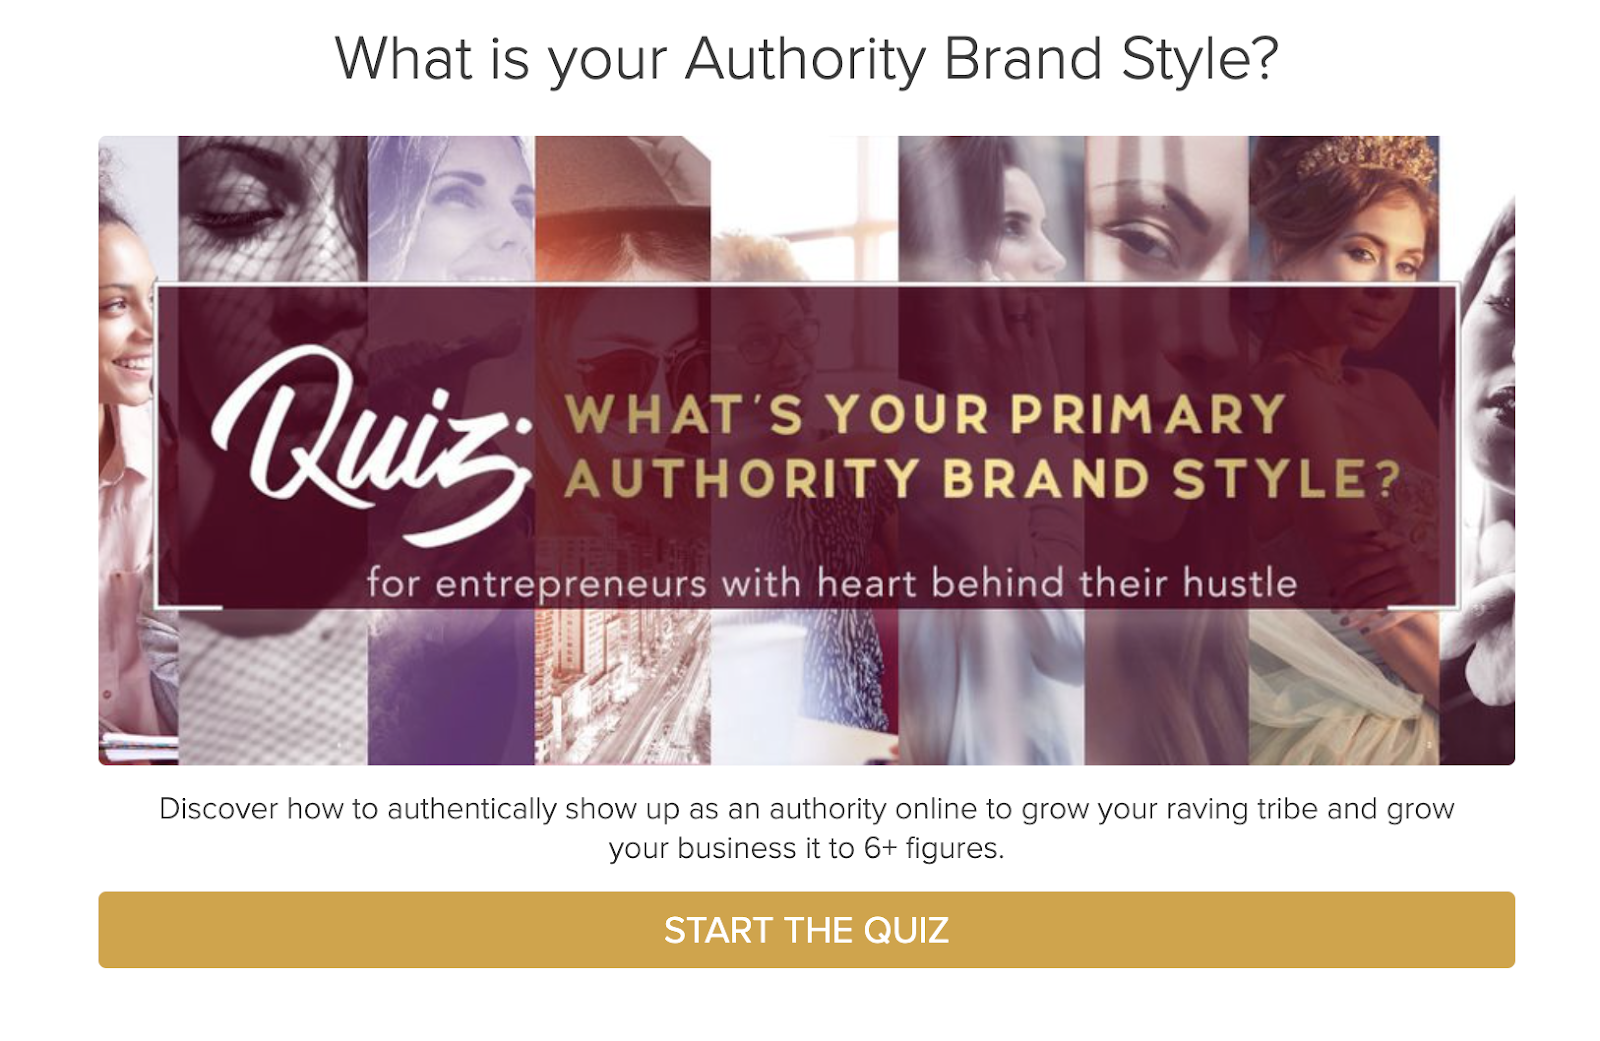 What is your authority brand style quiz cover